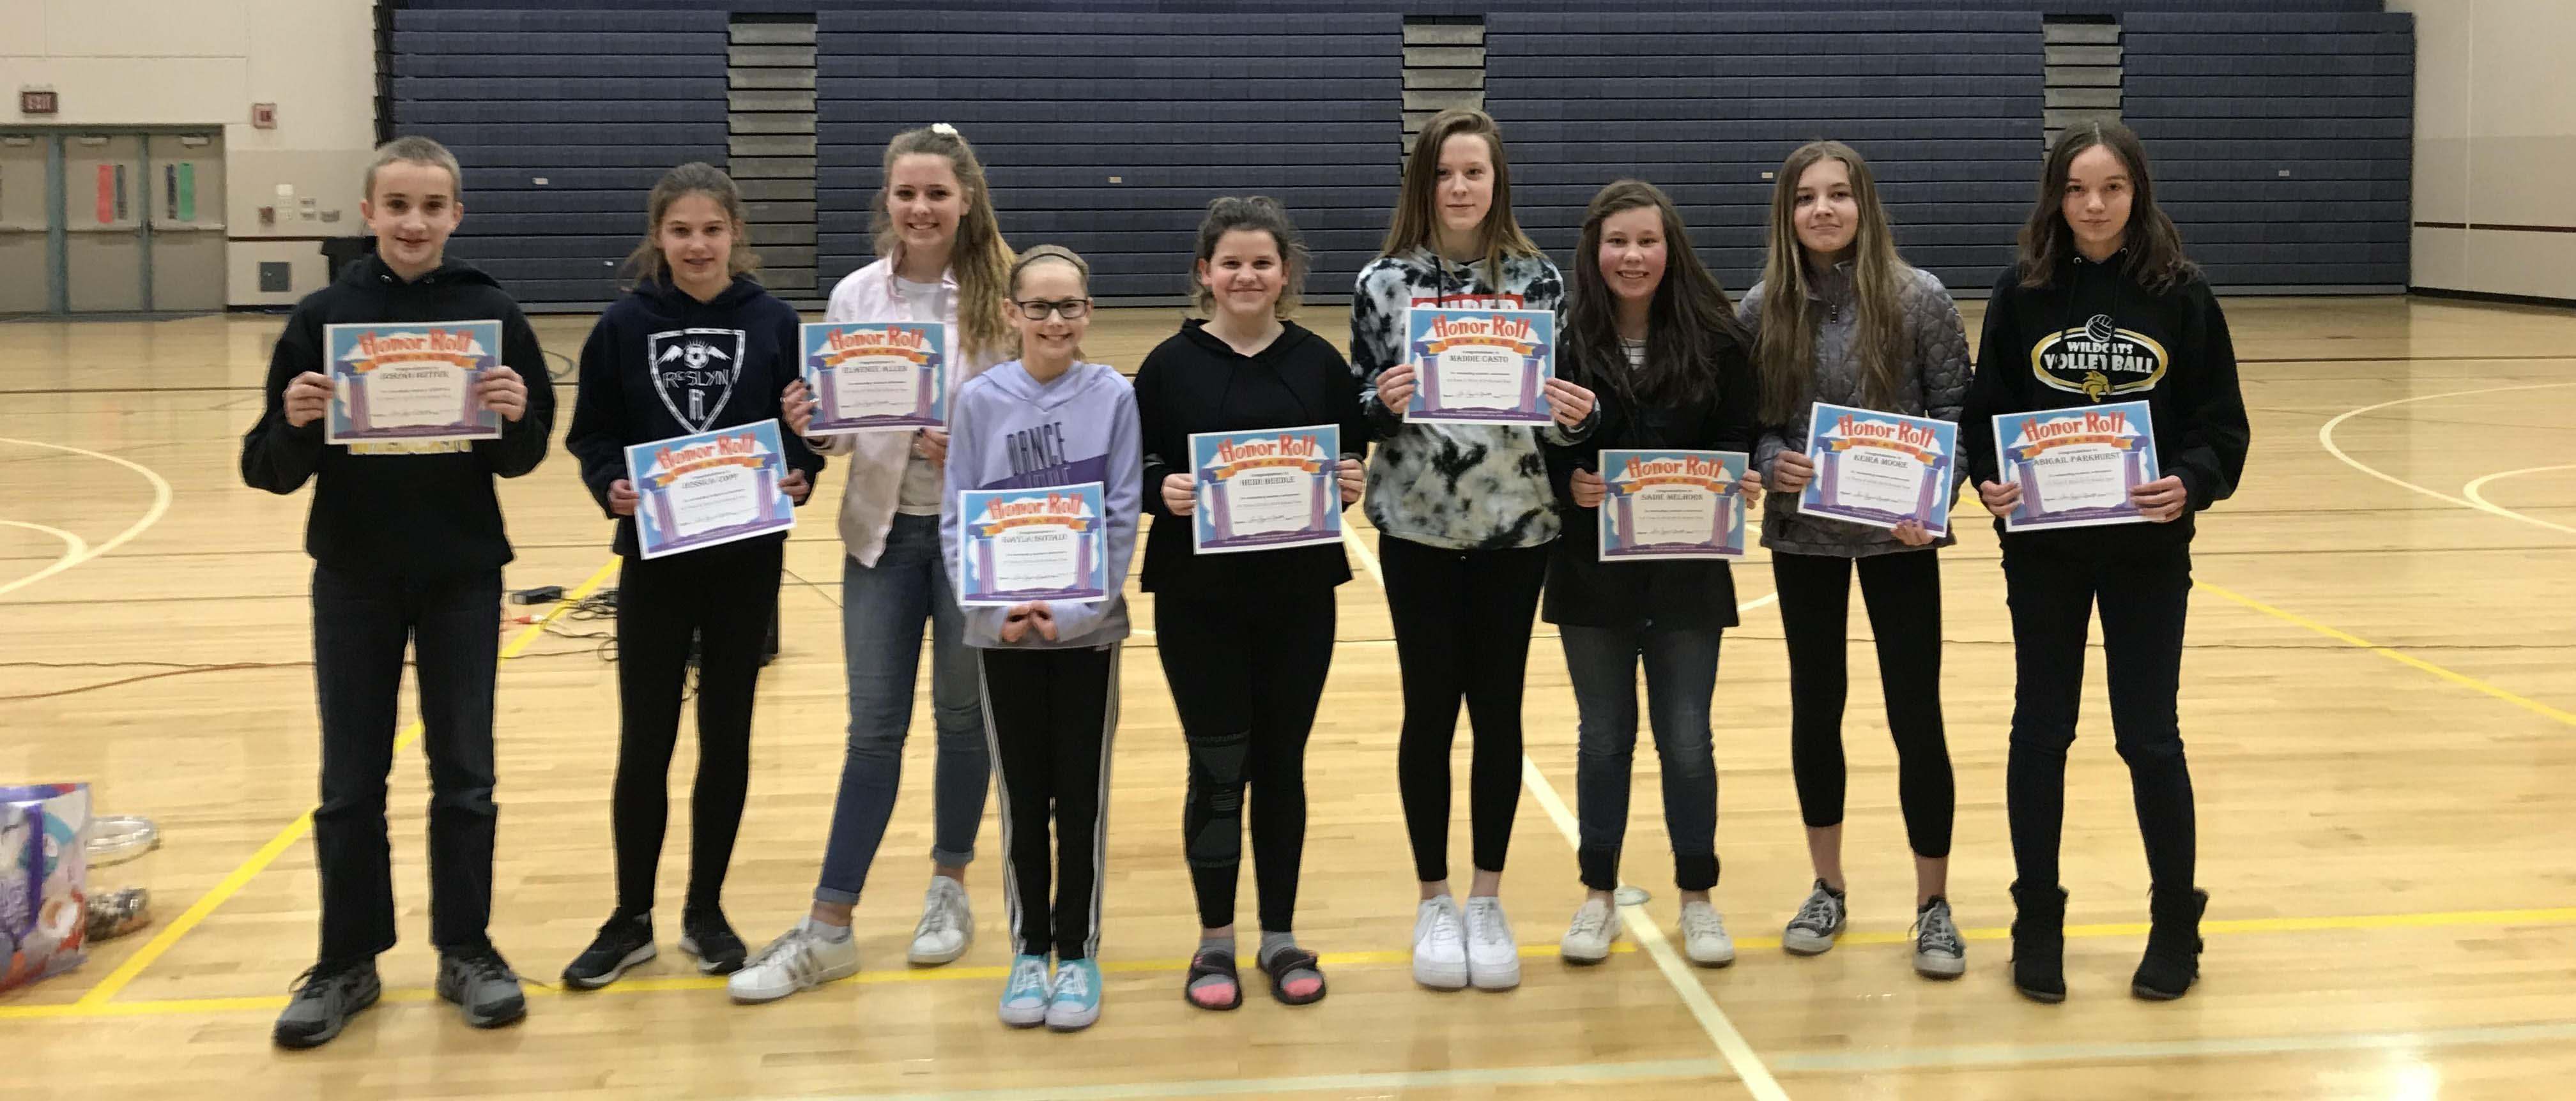 2019 Semester 1 Honor Roll students